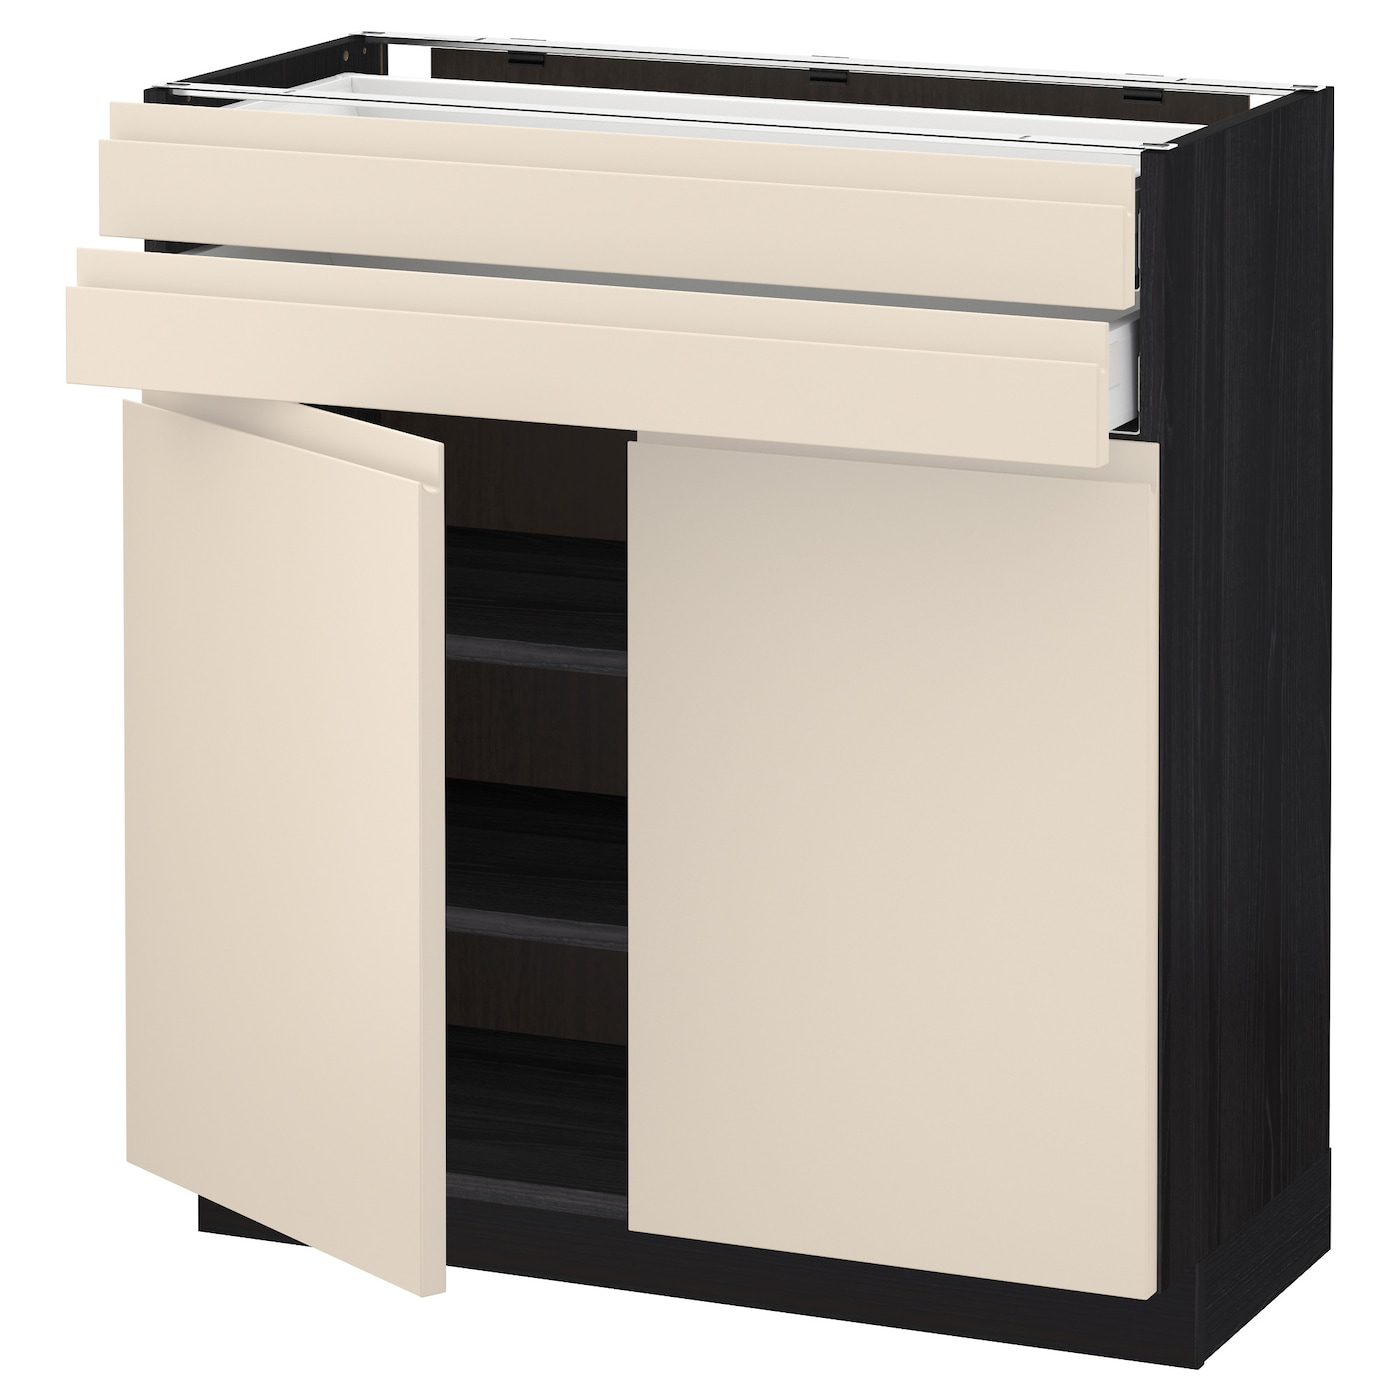 Metod Maximera Base Cabinet W 2 Doors 2 Drawers Black Voxtorp Light Beige 80x37 Cm Ikea